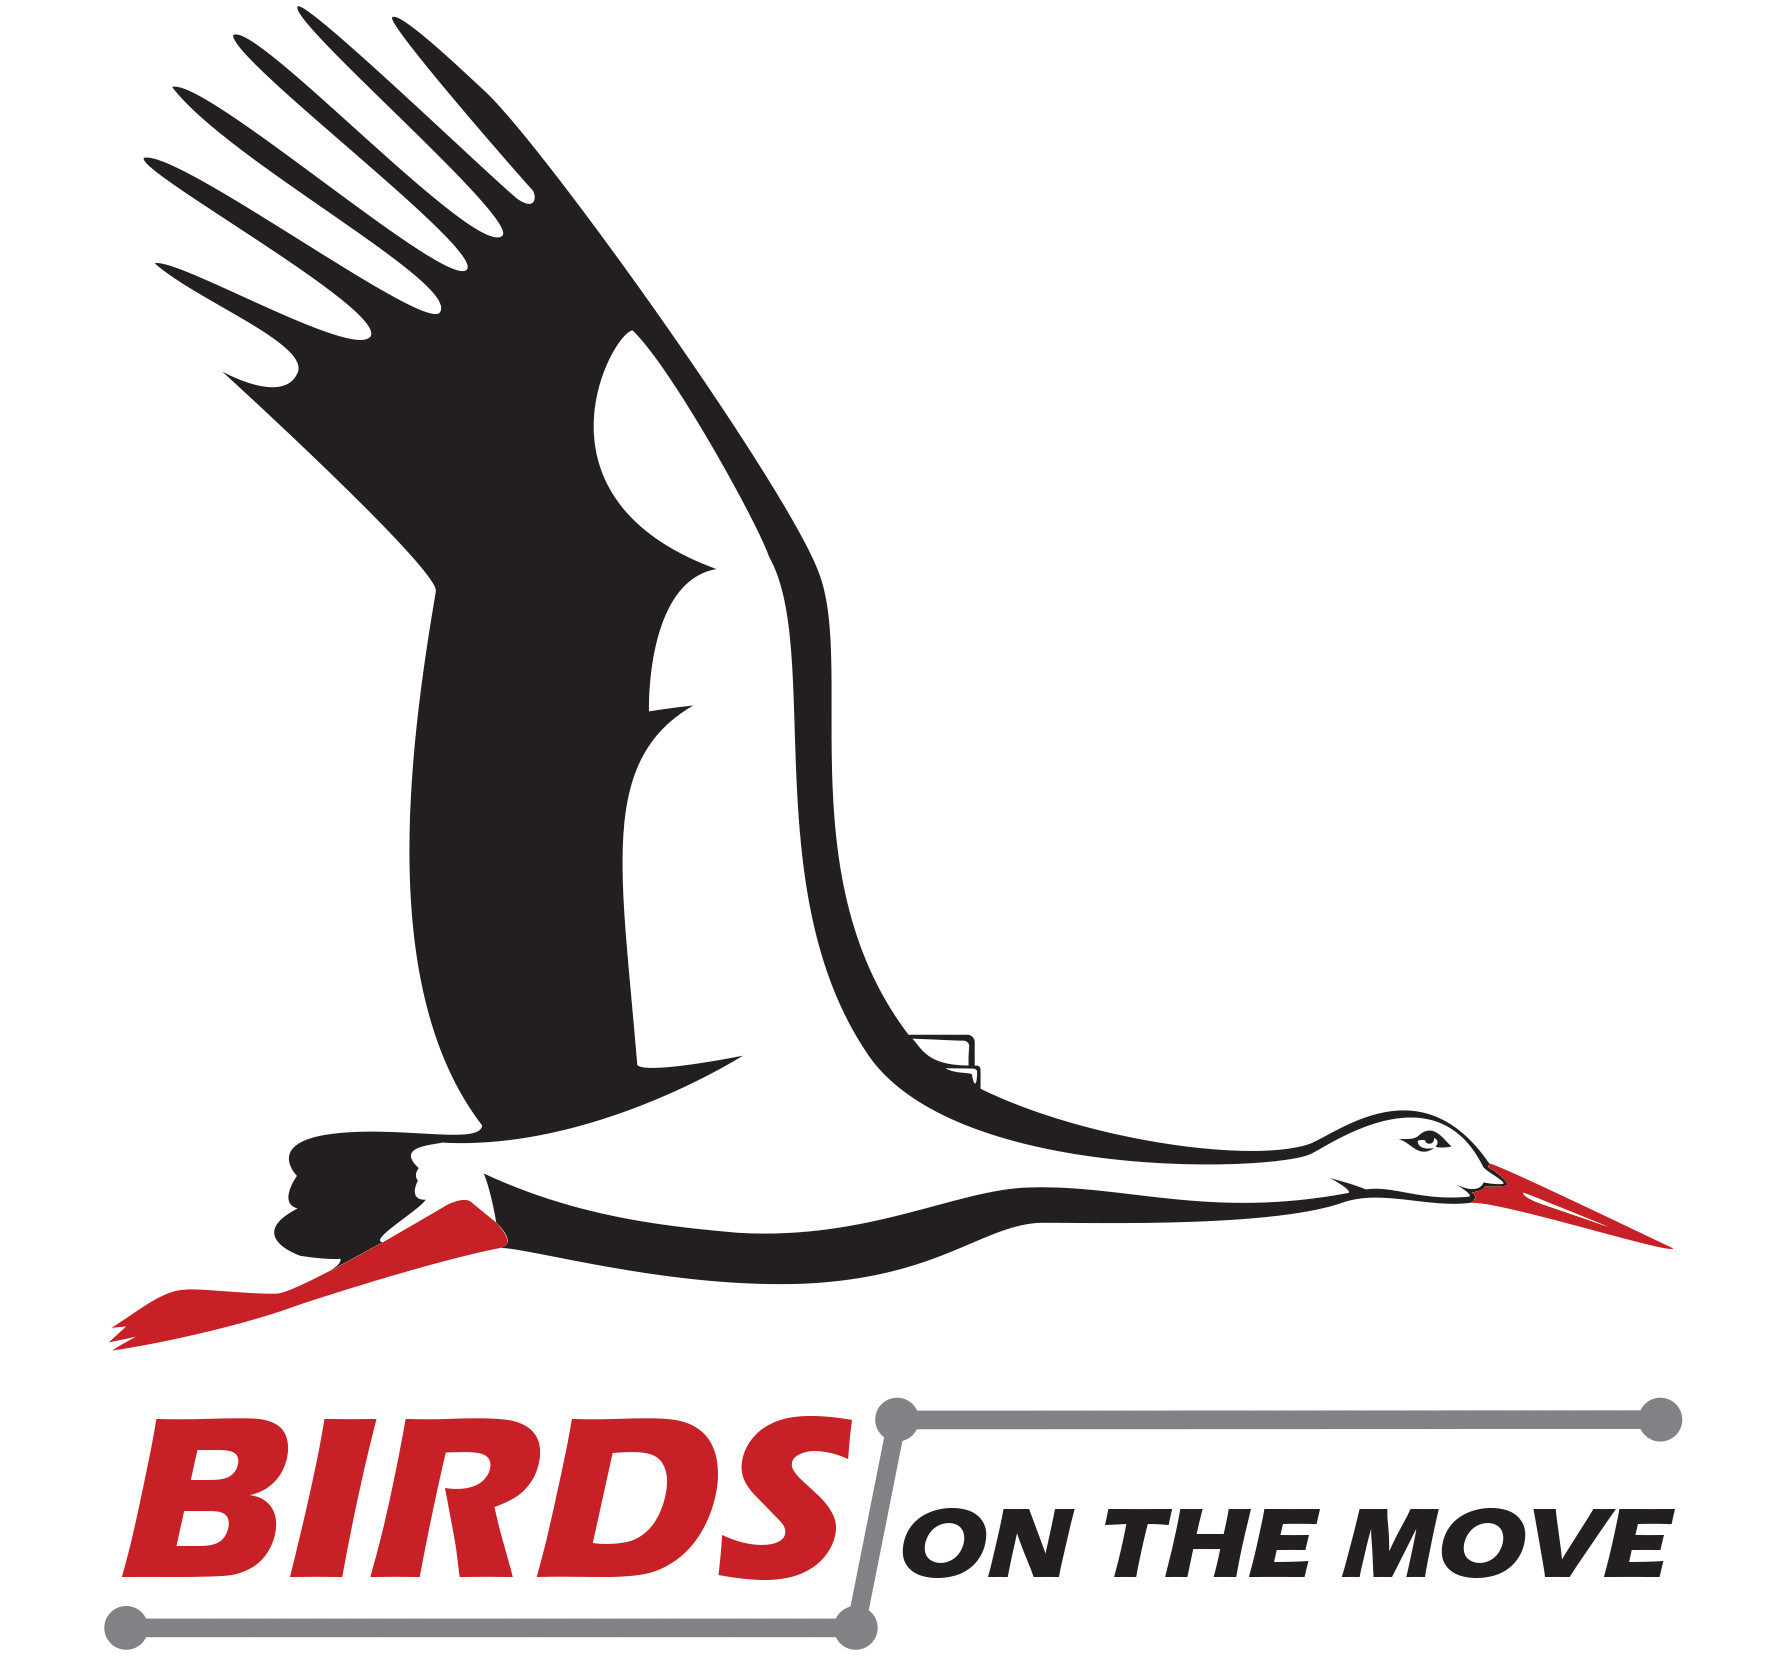 BIRDS ON THE MOVE